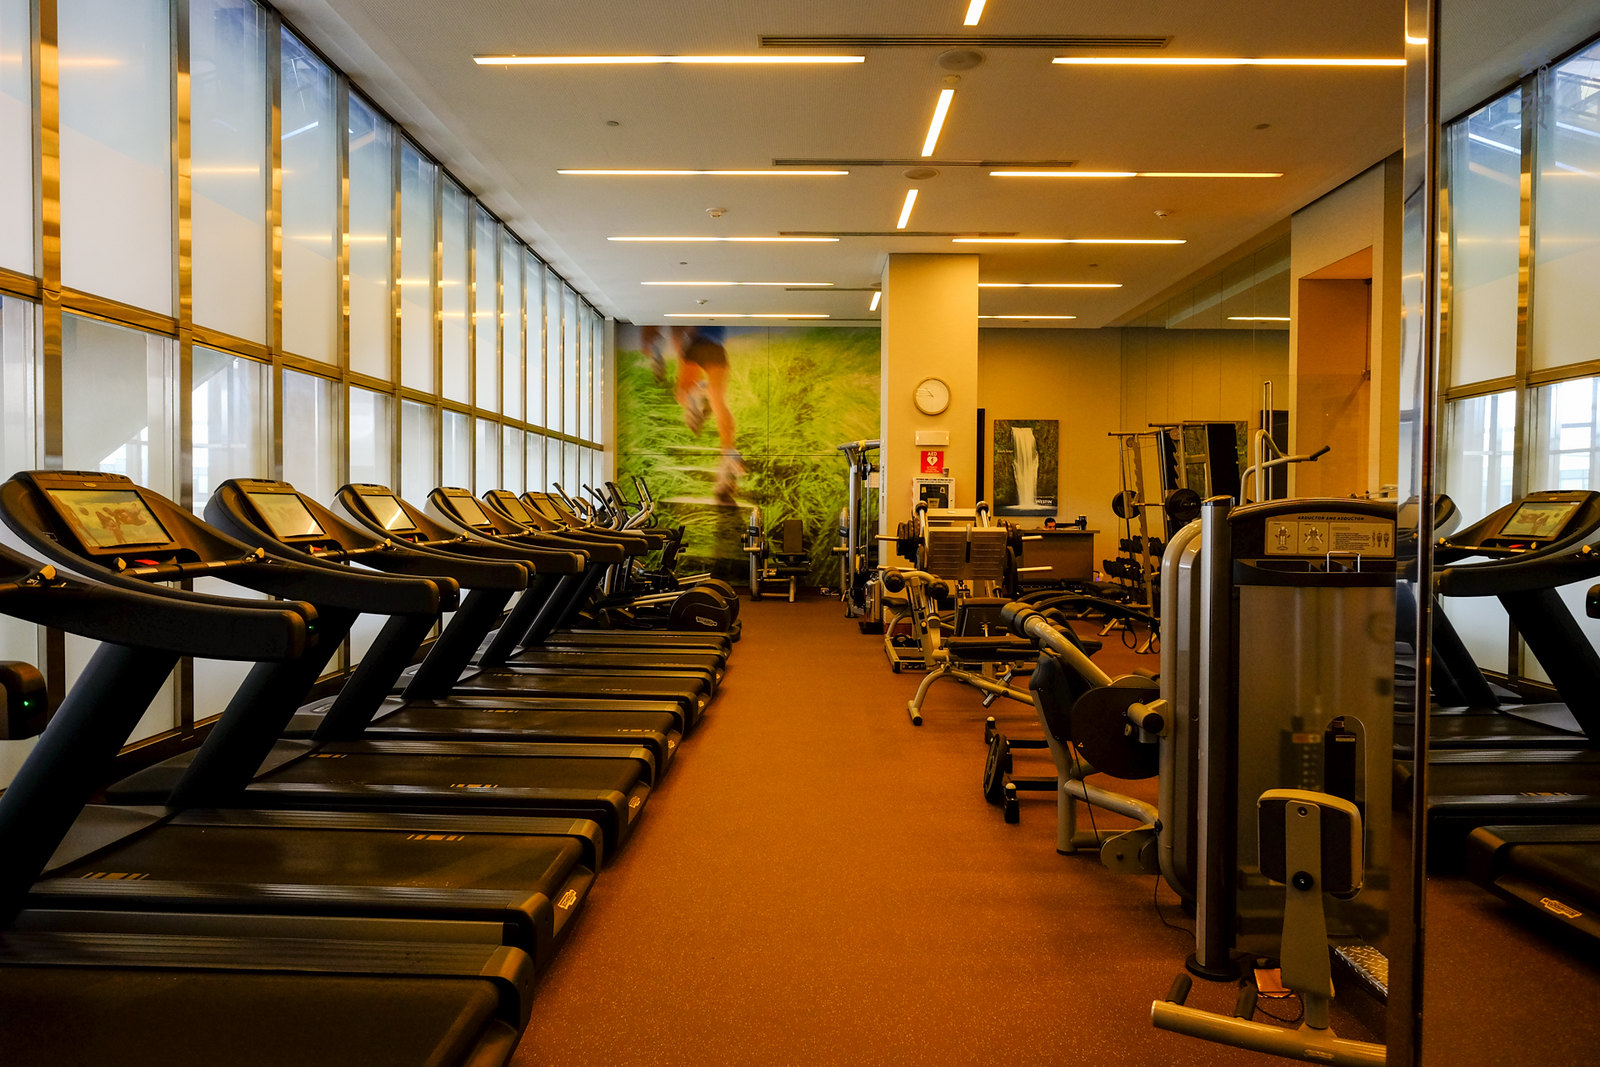 Inside the Fitness centre